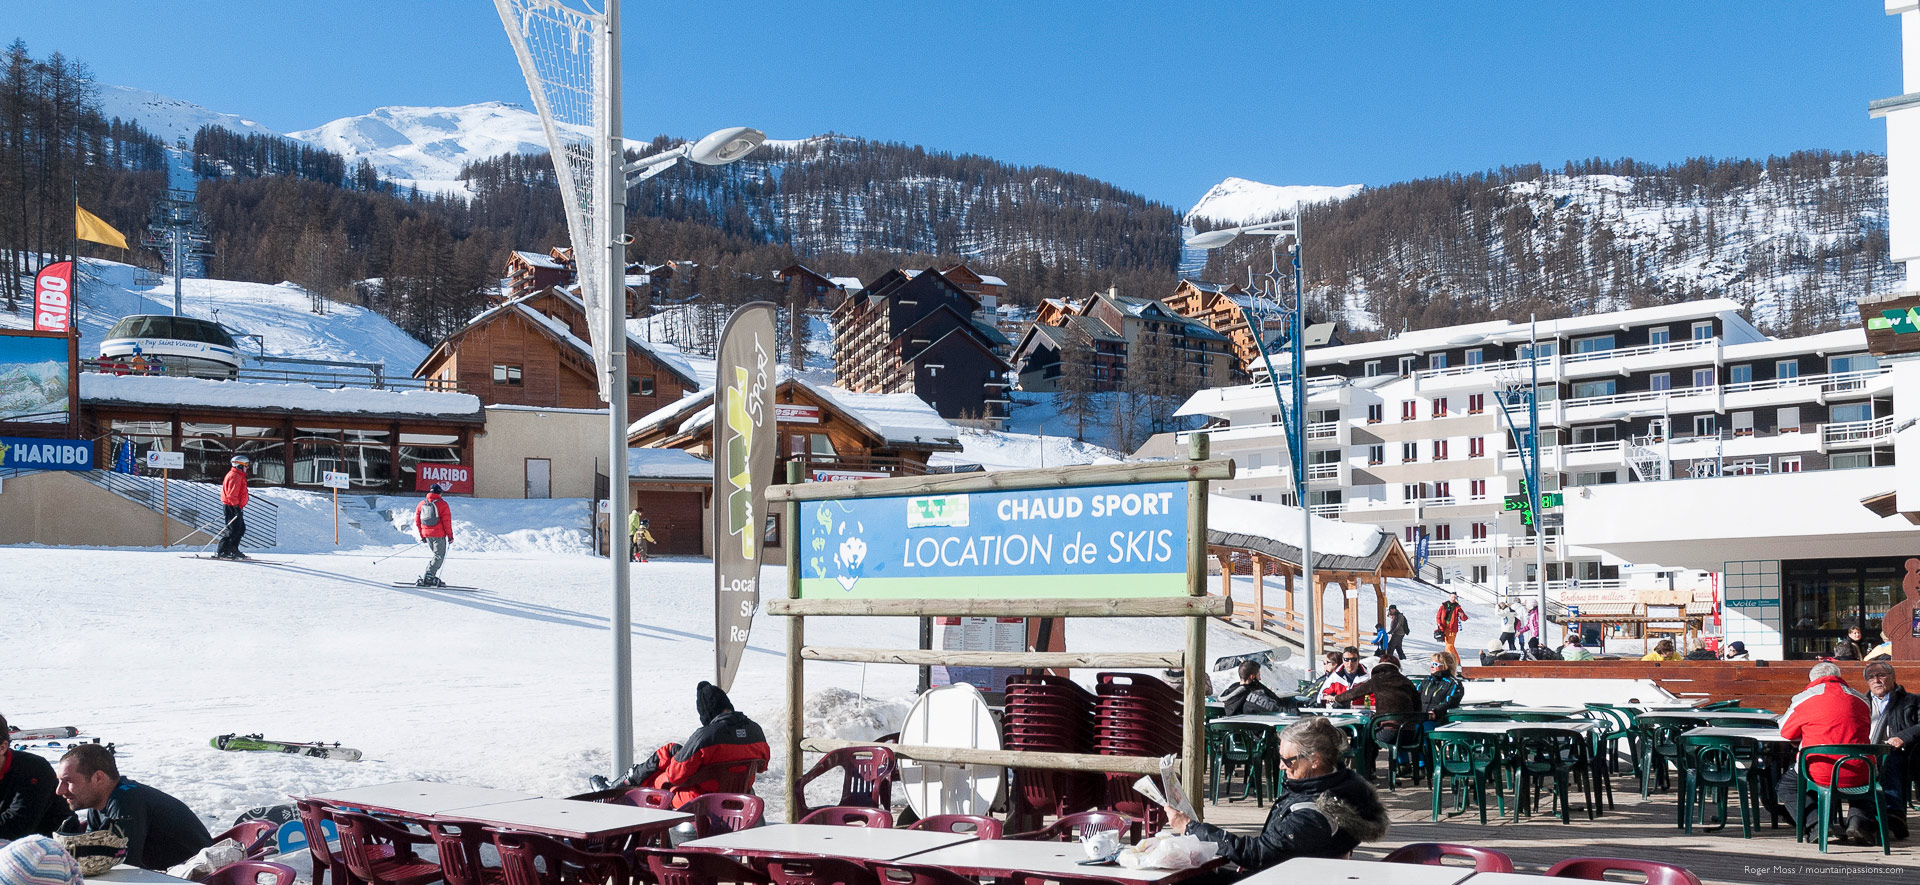 Wide view from cafe terrace, showing village apartments and ski lifts